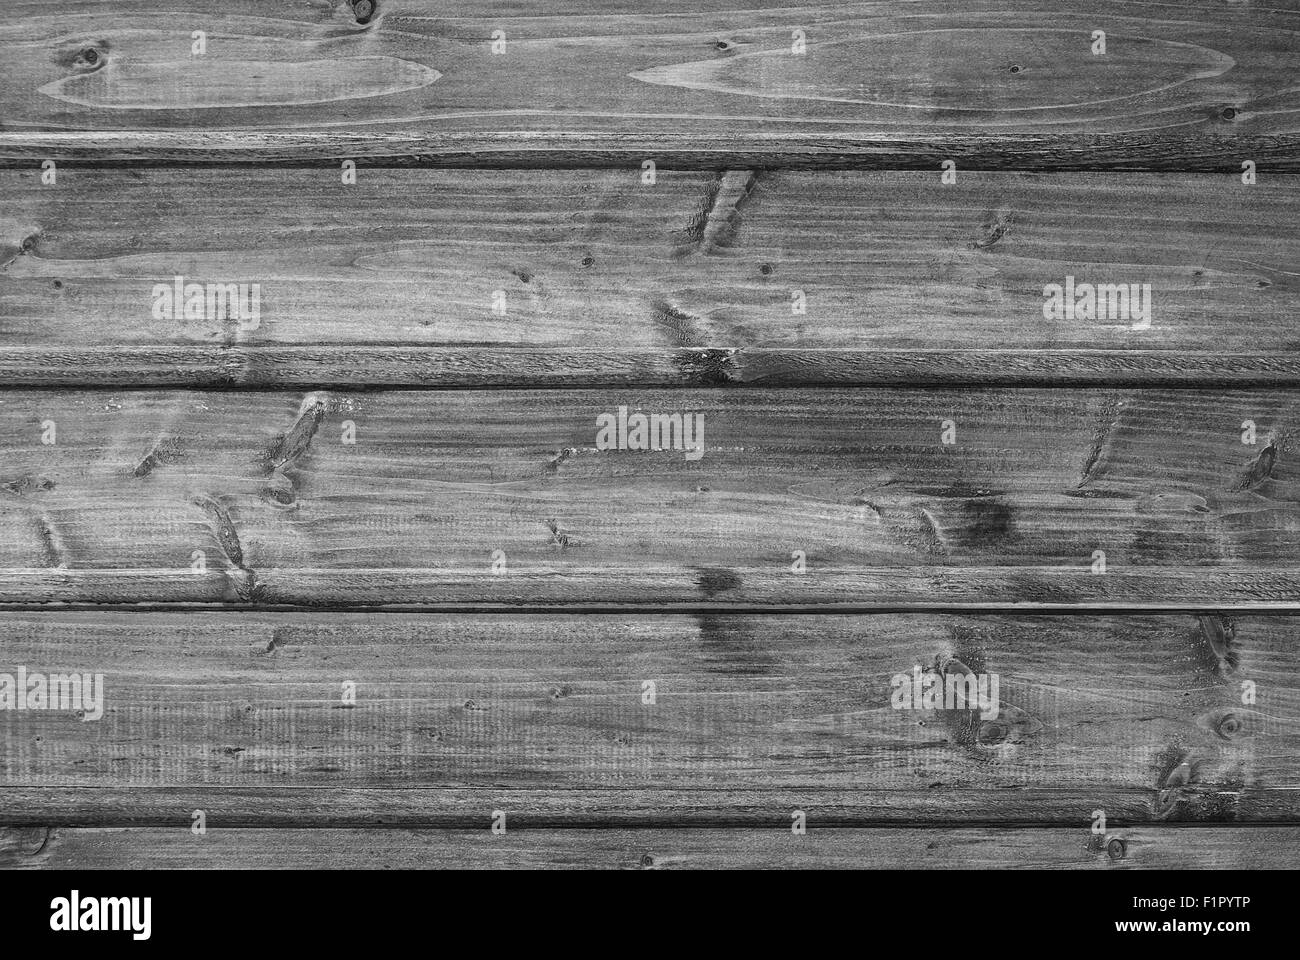 wooden planks texture. background texture. Element of design - Stock Image